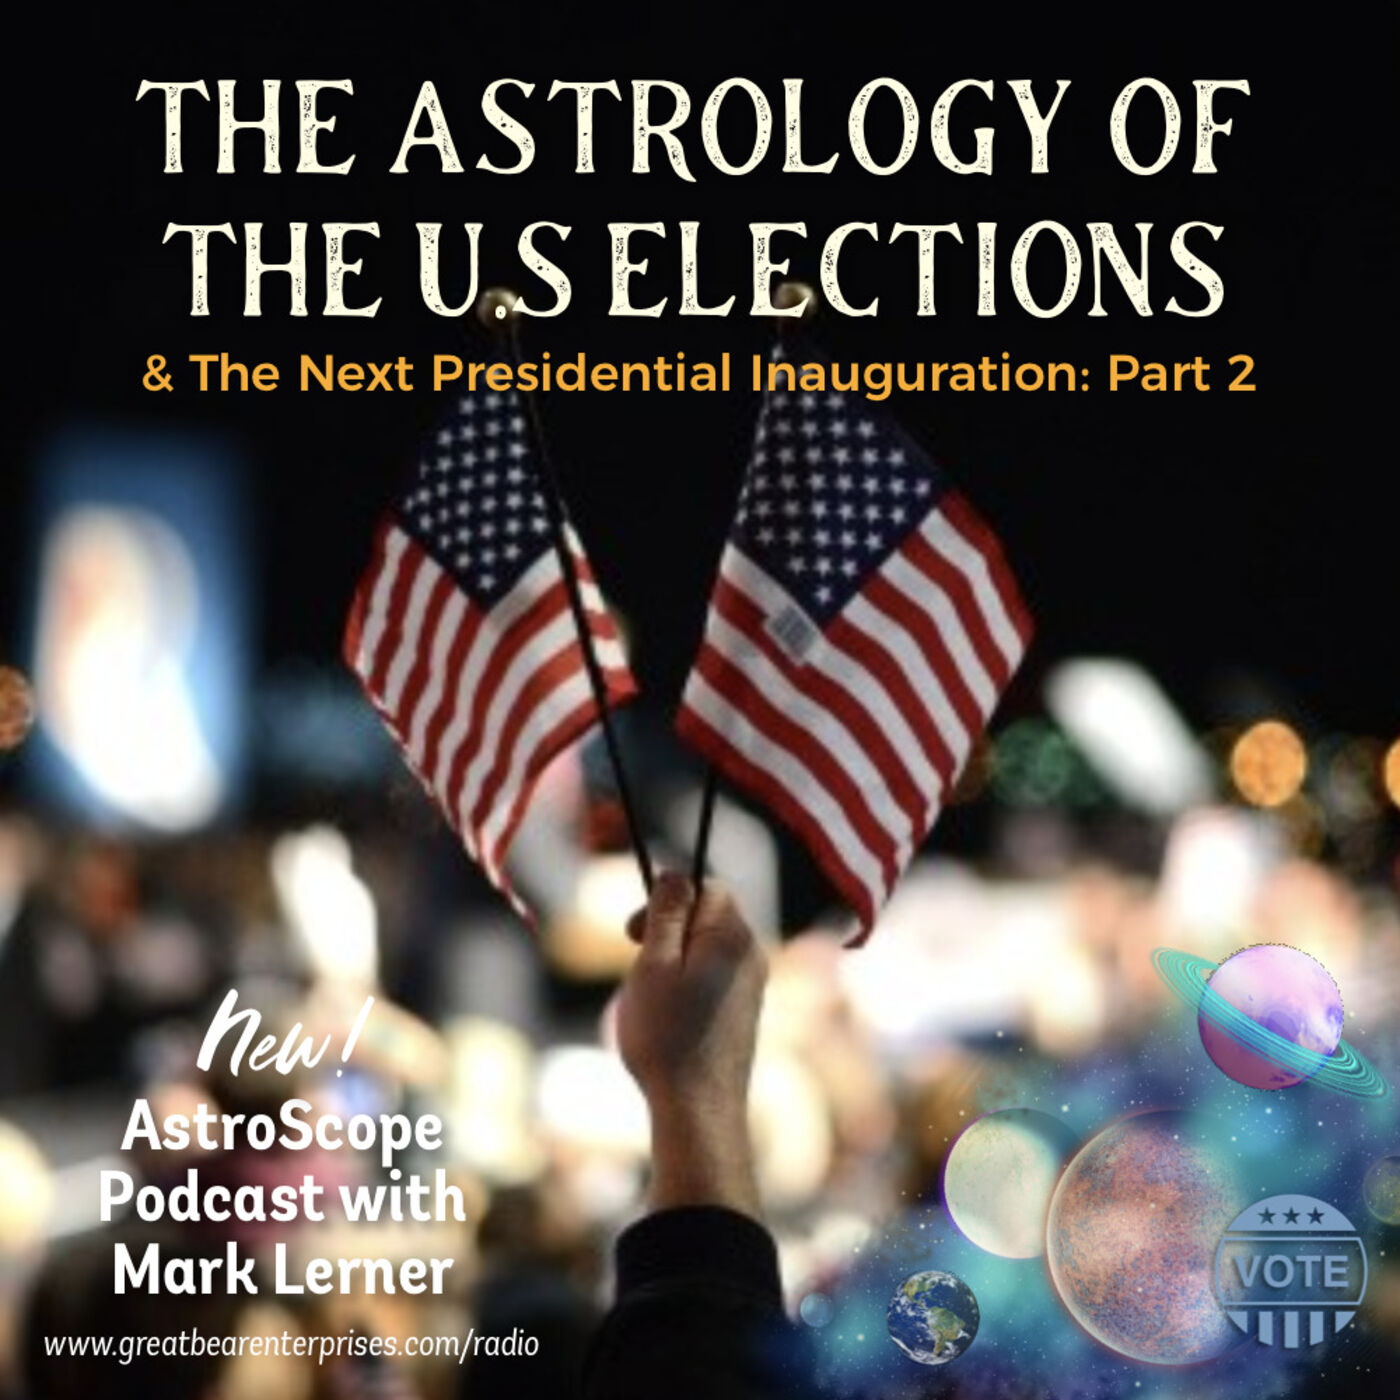 The Astrology of the 2020 U.S. Elections & the Next Presidential Inauguration: Part 2